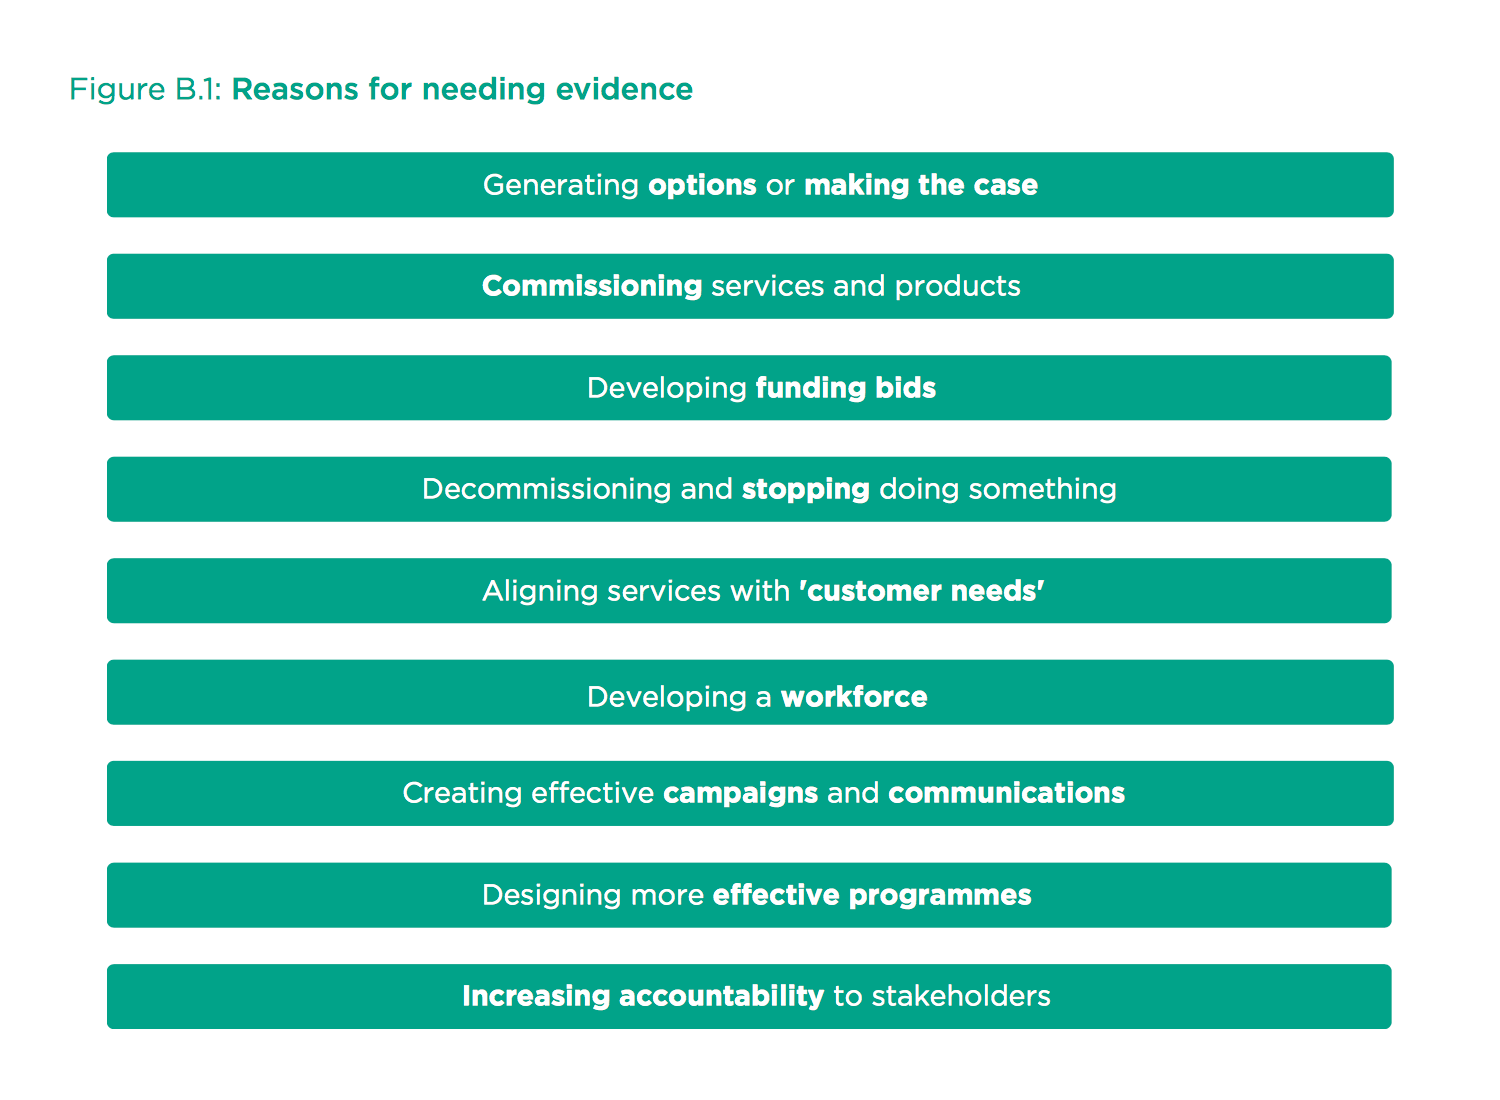 Figure 1: Reasons for needing evidence published by Alliance for Useful Evidence